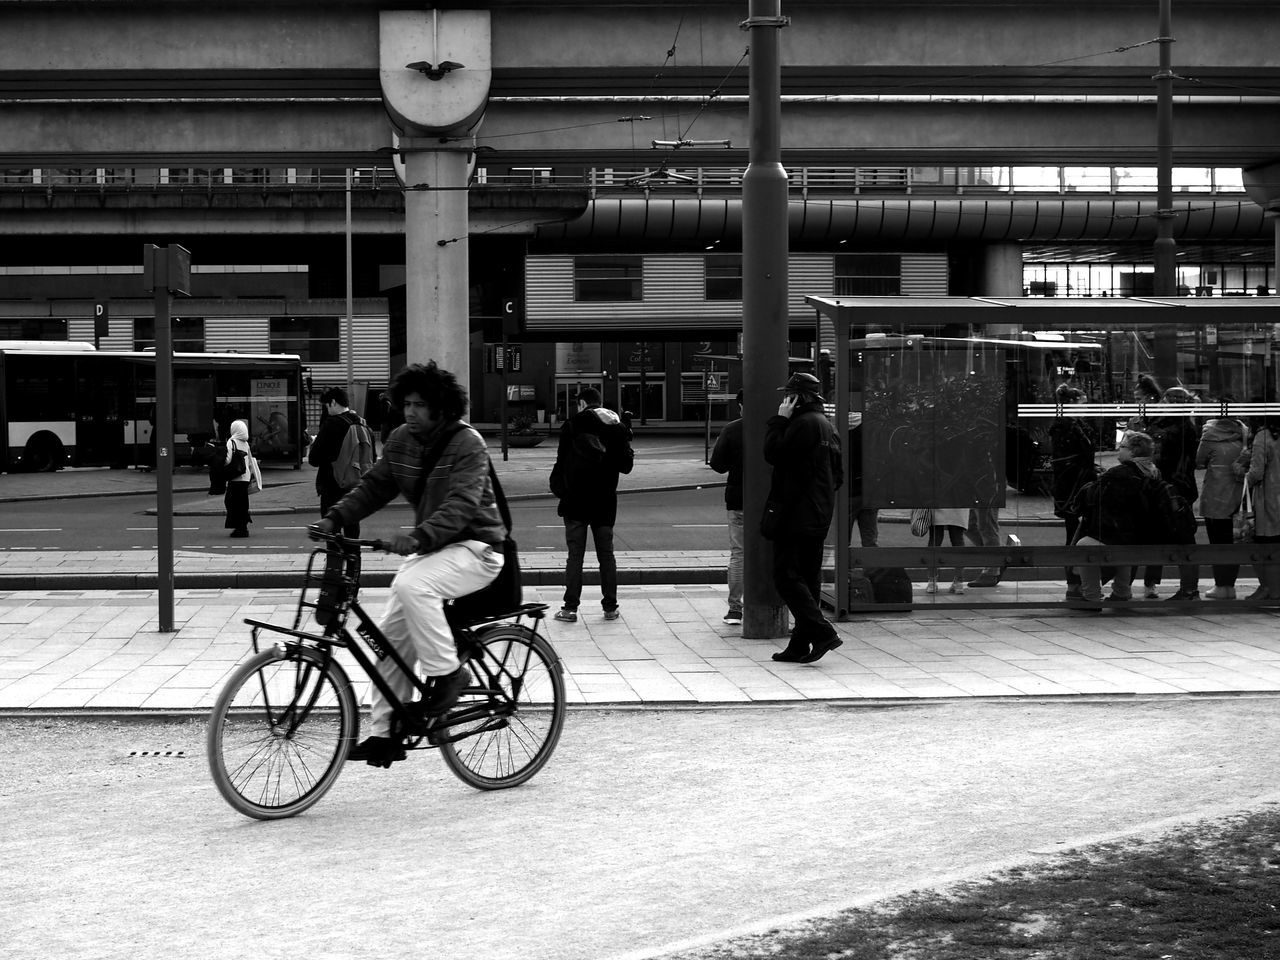 transportation, real people, public transportation, men, mode of transport, women, large group of people, group of people, architecture, day, indoors, adult, people